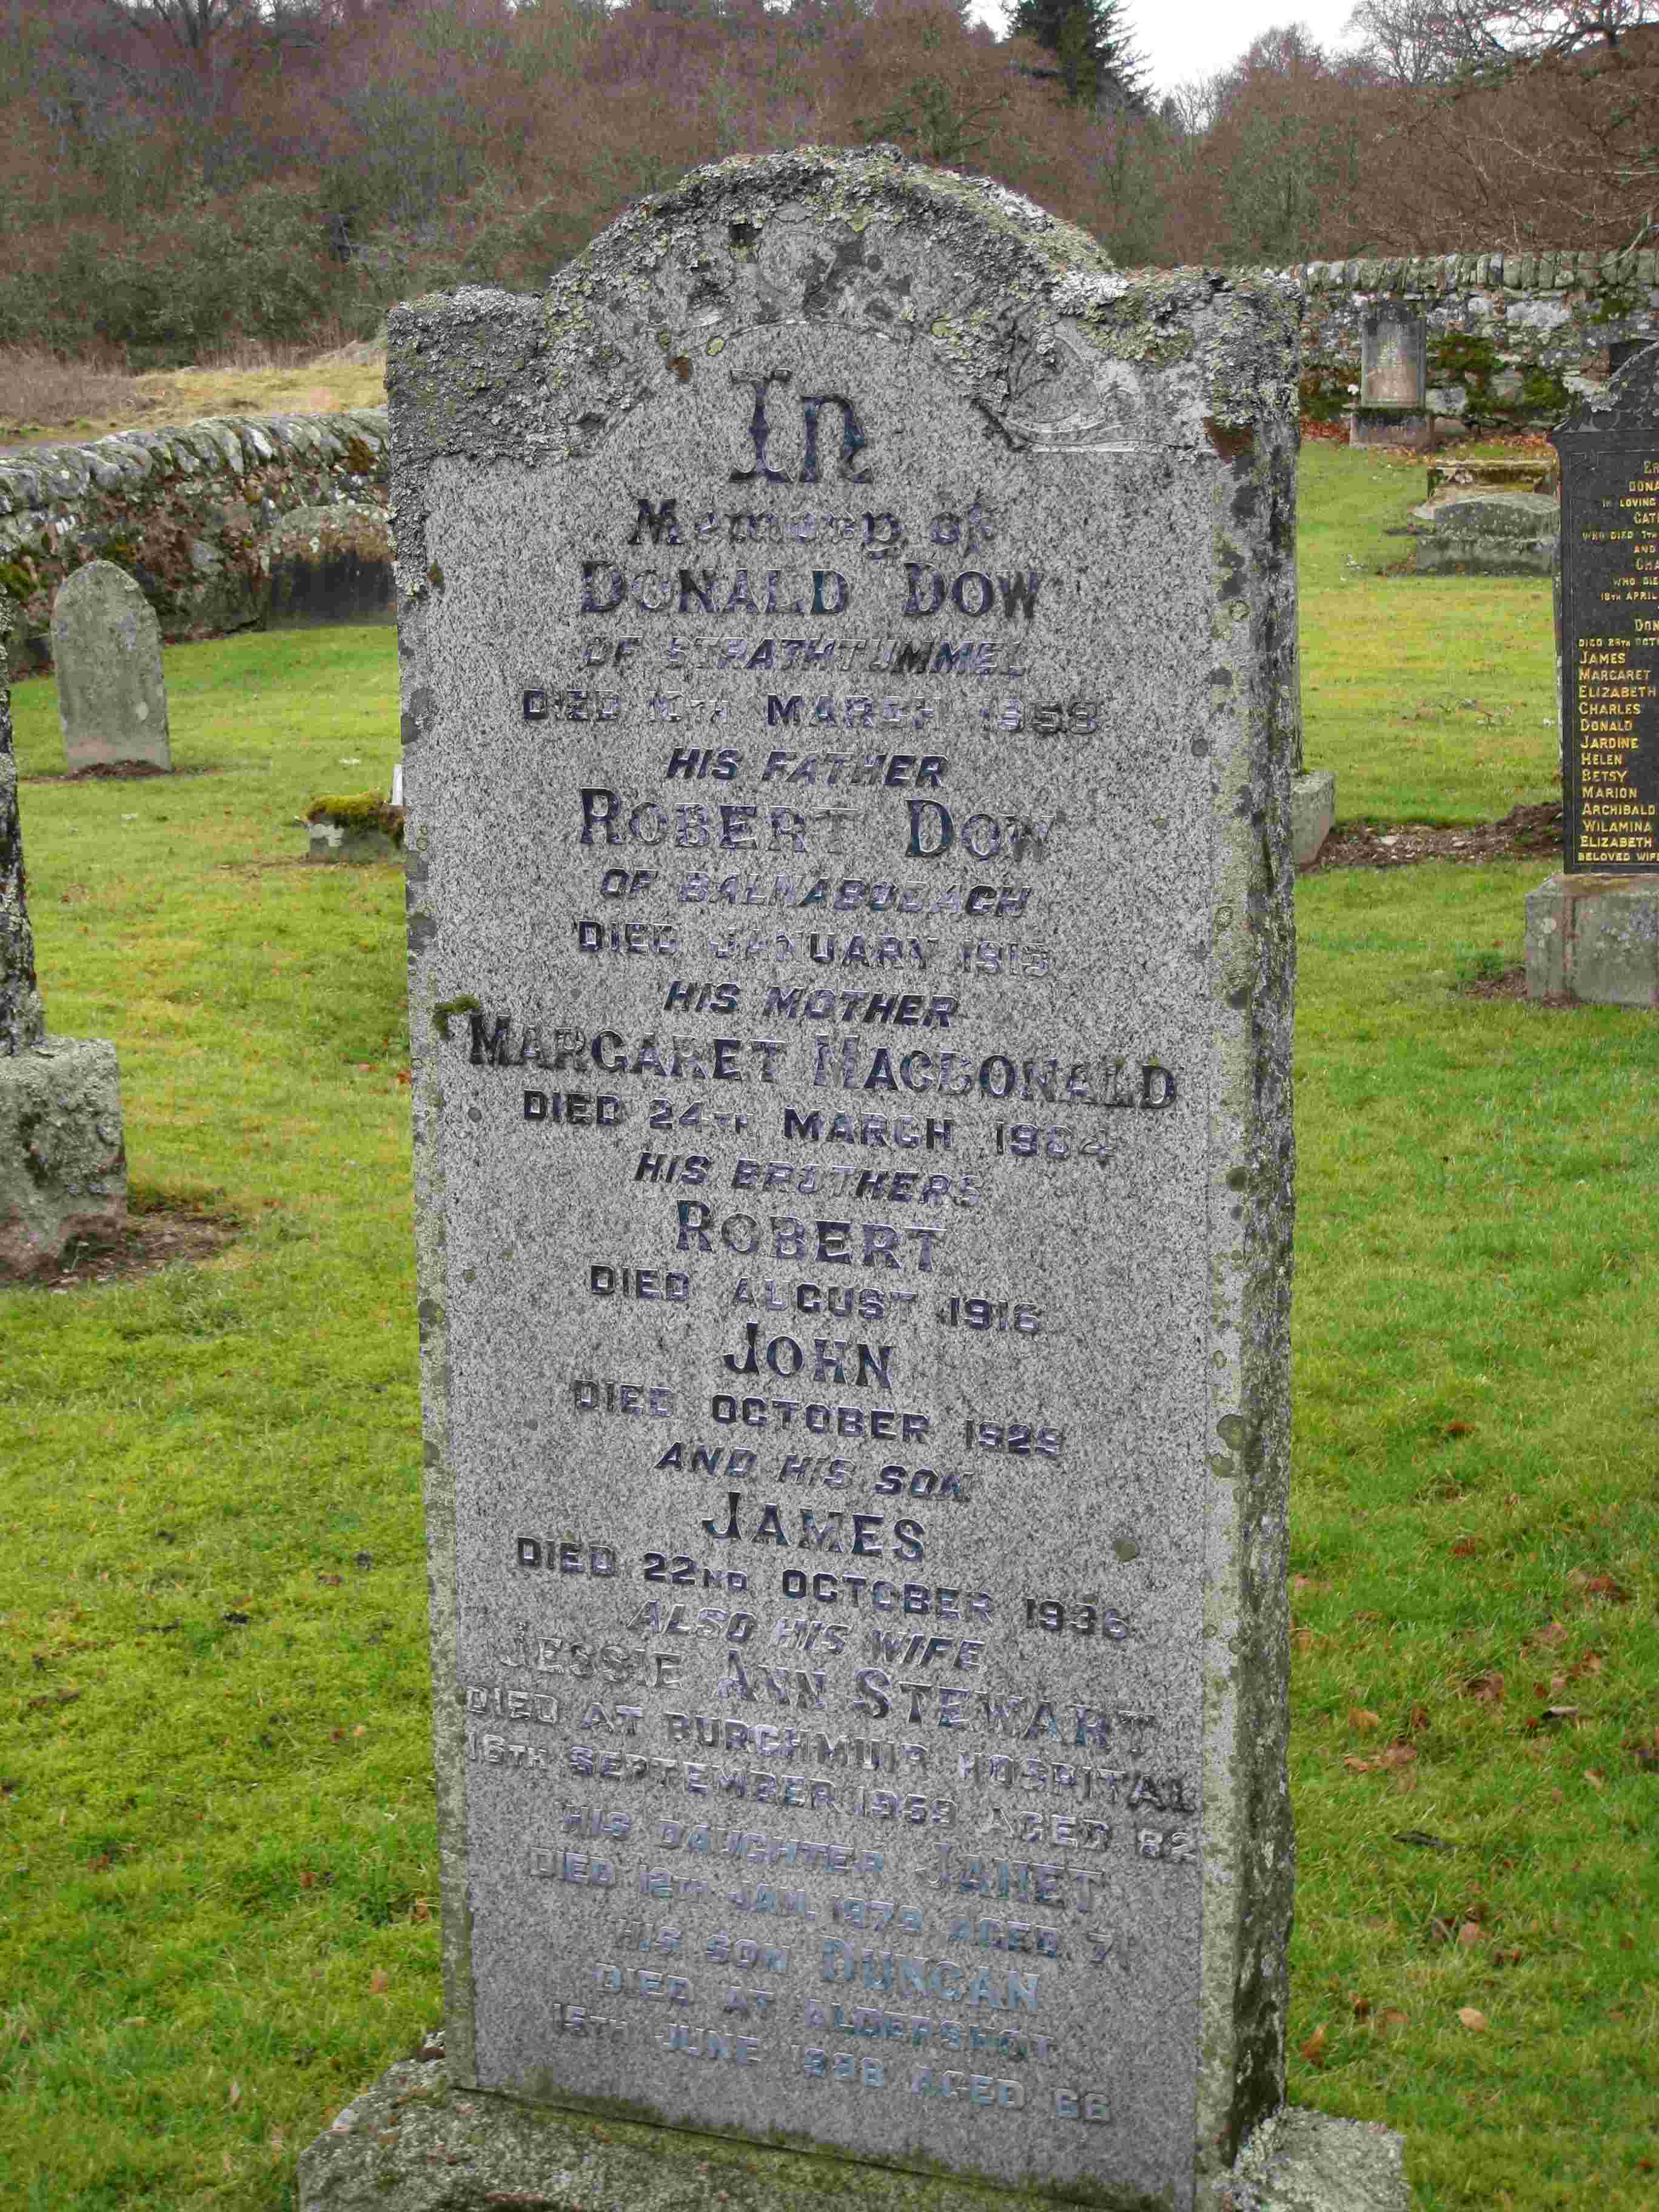 Memorial to Donald Dow of Tomintianda